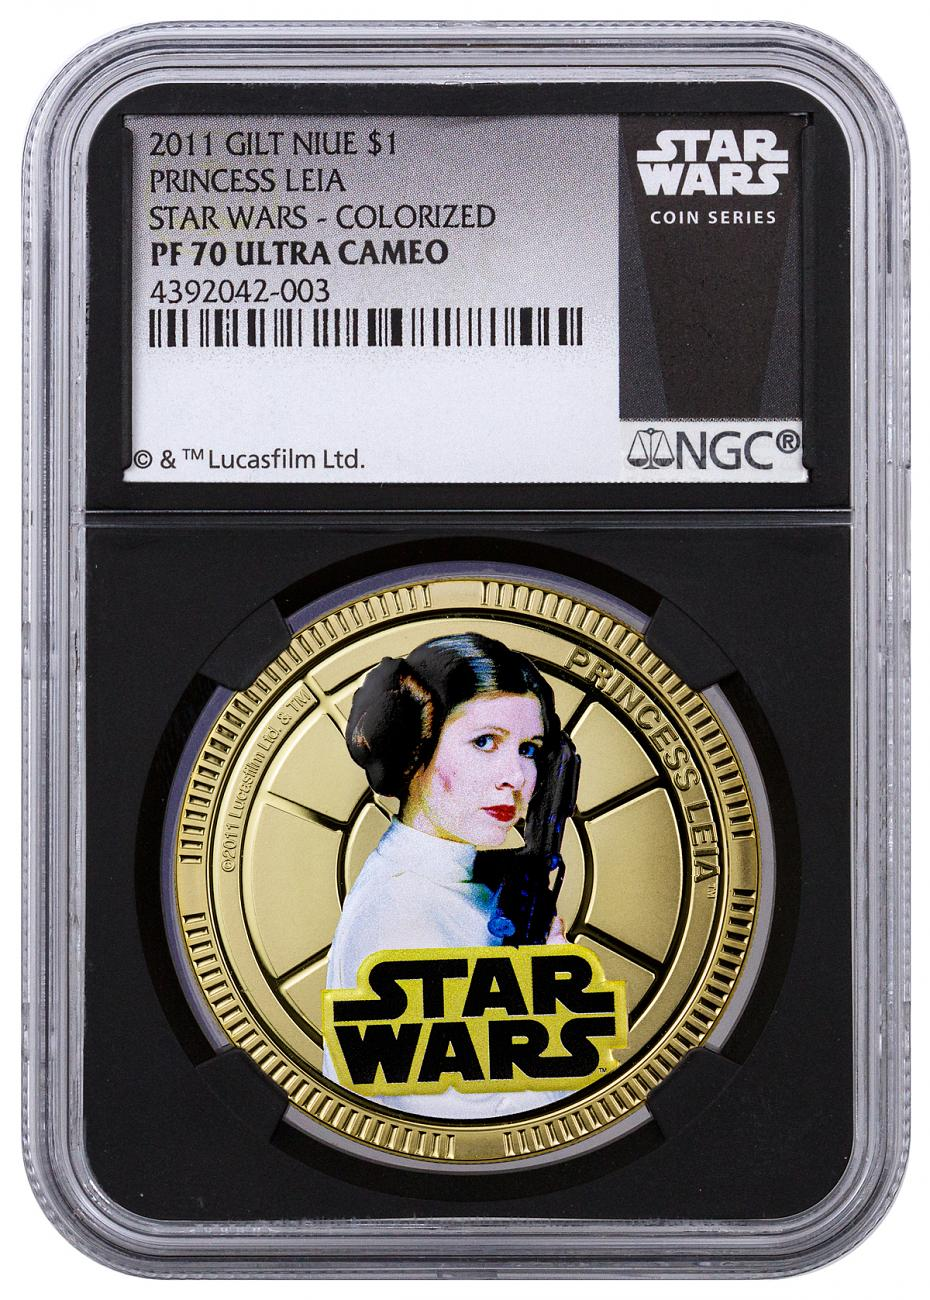 2011 Niue $1 Gilt Colorized Proof Clad Star Wars - Princess Leia - NGC PF70 UC (Exclusive Star Wars Label with Black Core)